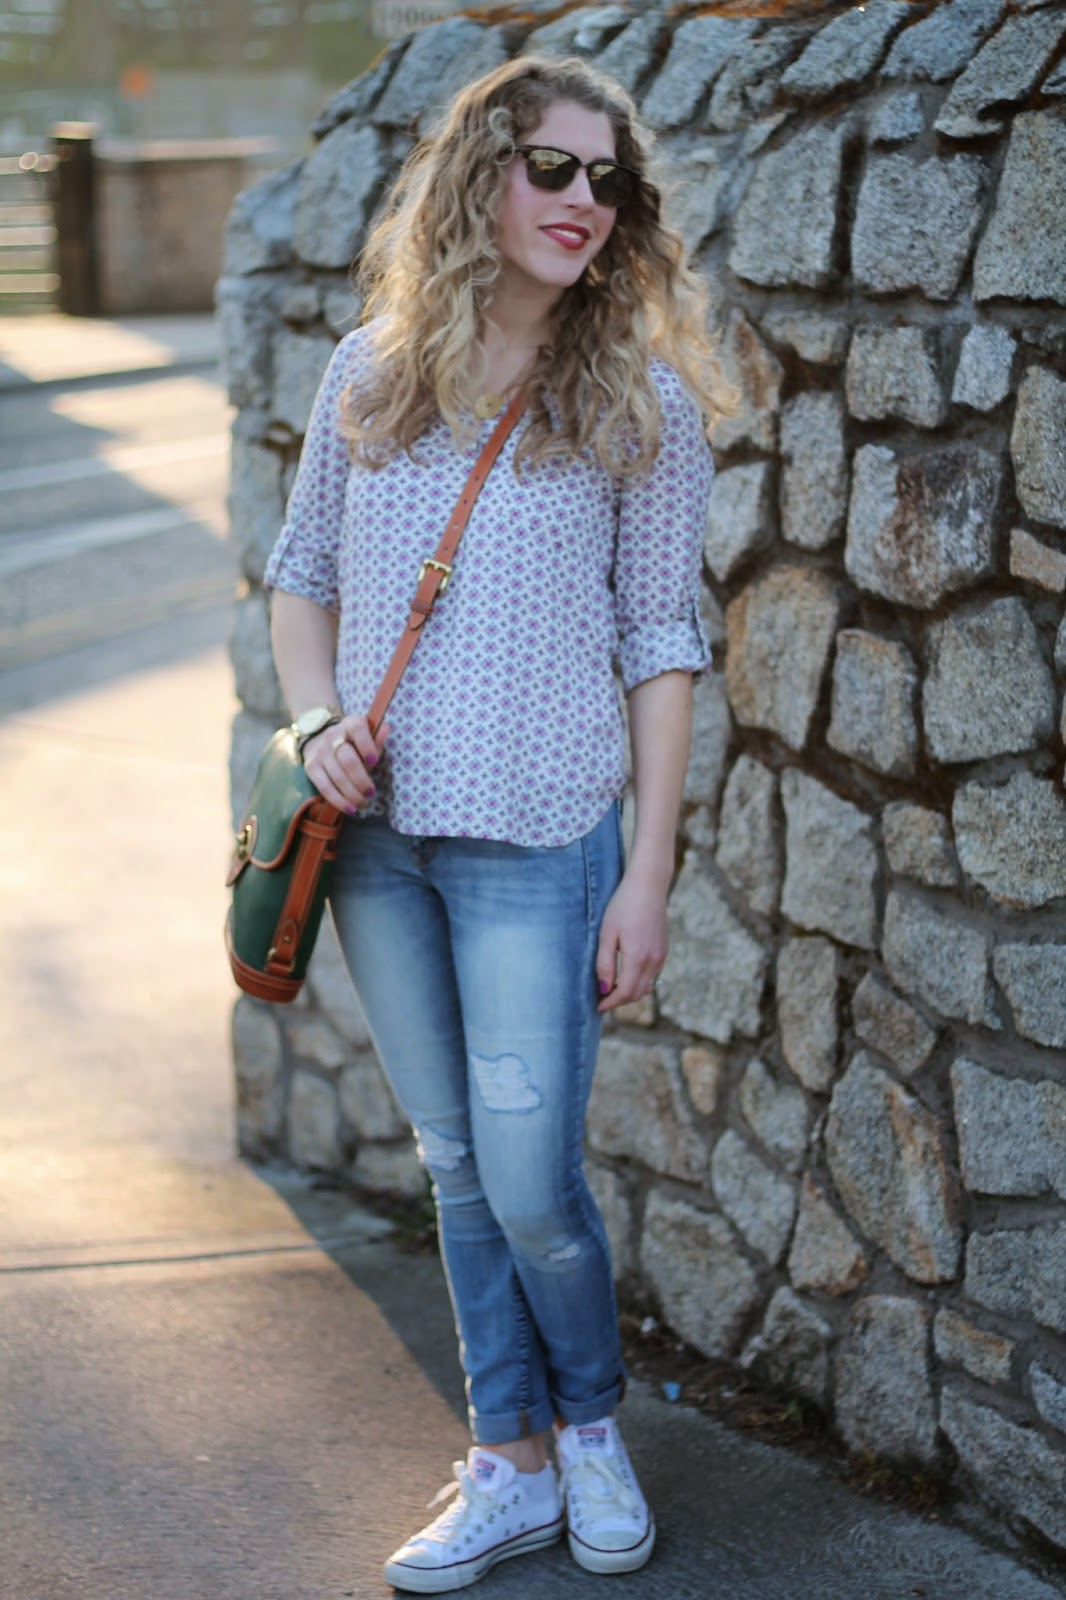 pink patterned blouse, distressed jeans, converse tennis shoes, Dooney & Burke crossbody bag, jamberry nail wraps